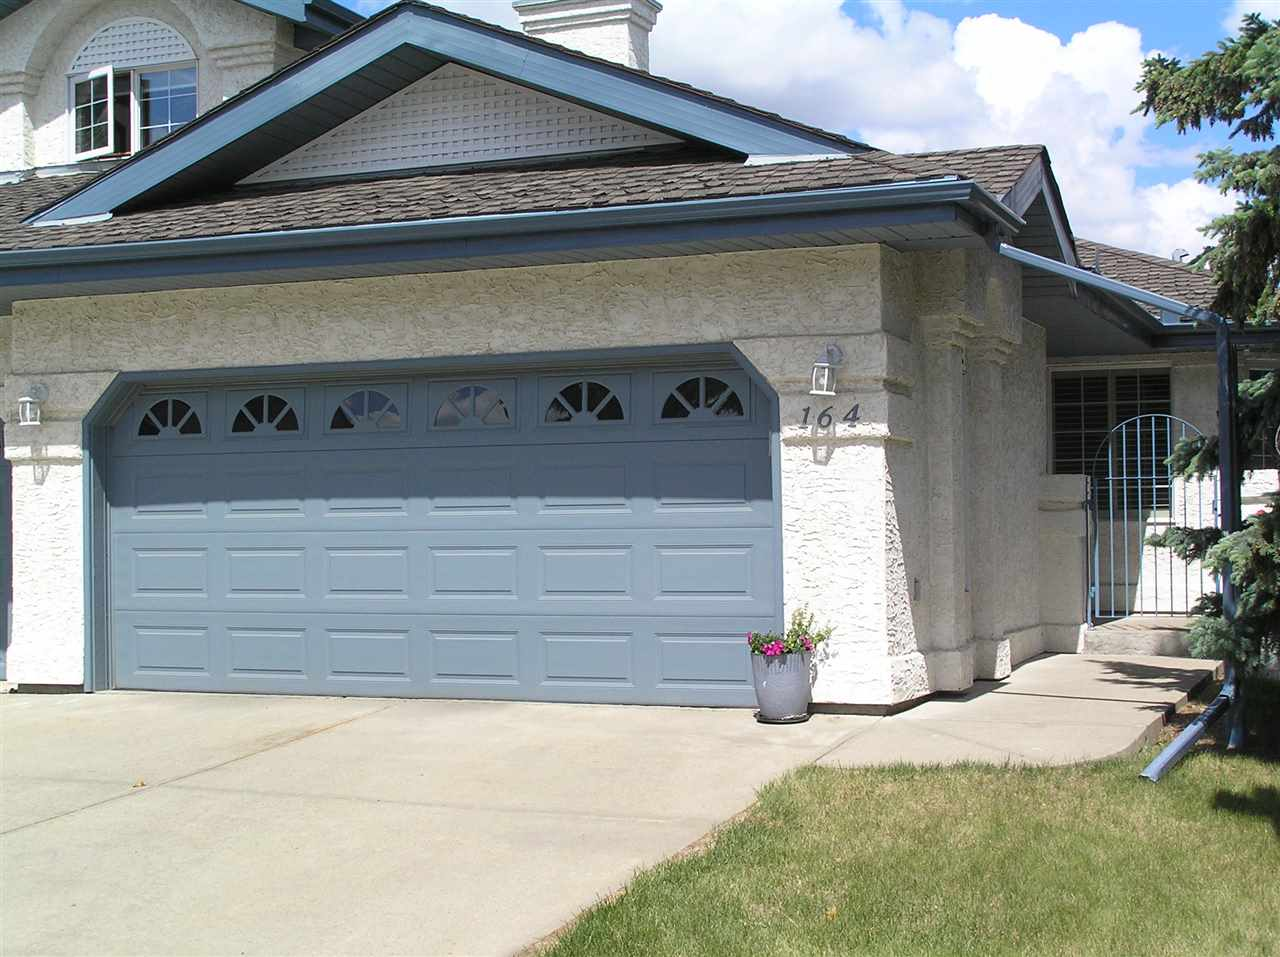 Gorgeous 2 plus 2 bedroom bungalow in sought after Whitemud Creek Estates, Phase 2. Adult (18yrs Plus) complex close to the ravine. This well cared for home has double attached garage, air conditioning and attached vacuum. On main floor is big master bedroom with hers 'n' his closets and adjoining door to main floor bathroom, another bedroom with glass paneled door. The bright kitchen has lots of cupboard space, plenty of worktops and breakfast nook. The massive bright living room with 9 feet cathedral ceilings opens up through new sliding doors to oversize deck (due to be repainted) with gas BBQ hookup in pet friendly fully fenced yard. The fully finished basement has just been refinished with new carpeted, baseboards and freshly painted. It has massive family room, 2 big bedrooms a full 3 piece bathroom and lots of storage. Electric chairlift is also included. This home is conveniently situated close to walking paths and the ravine  and is sure to please. It just feels good!